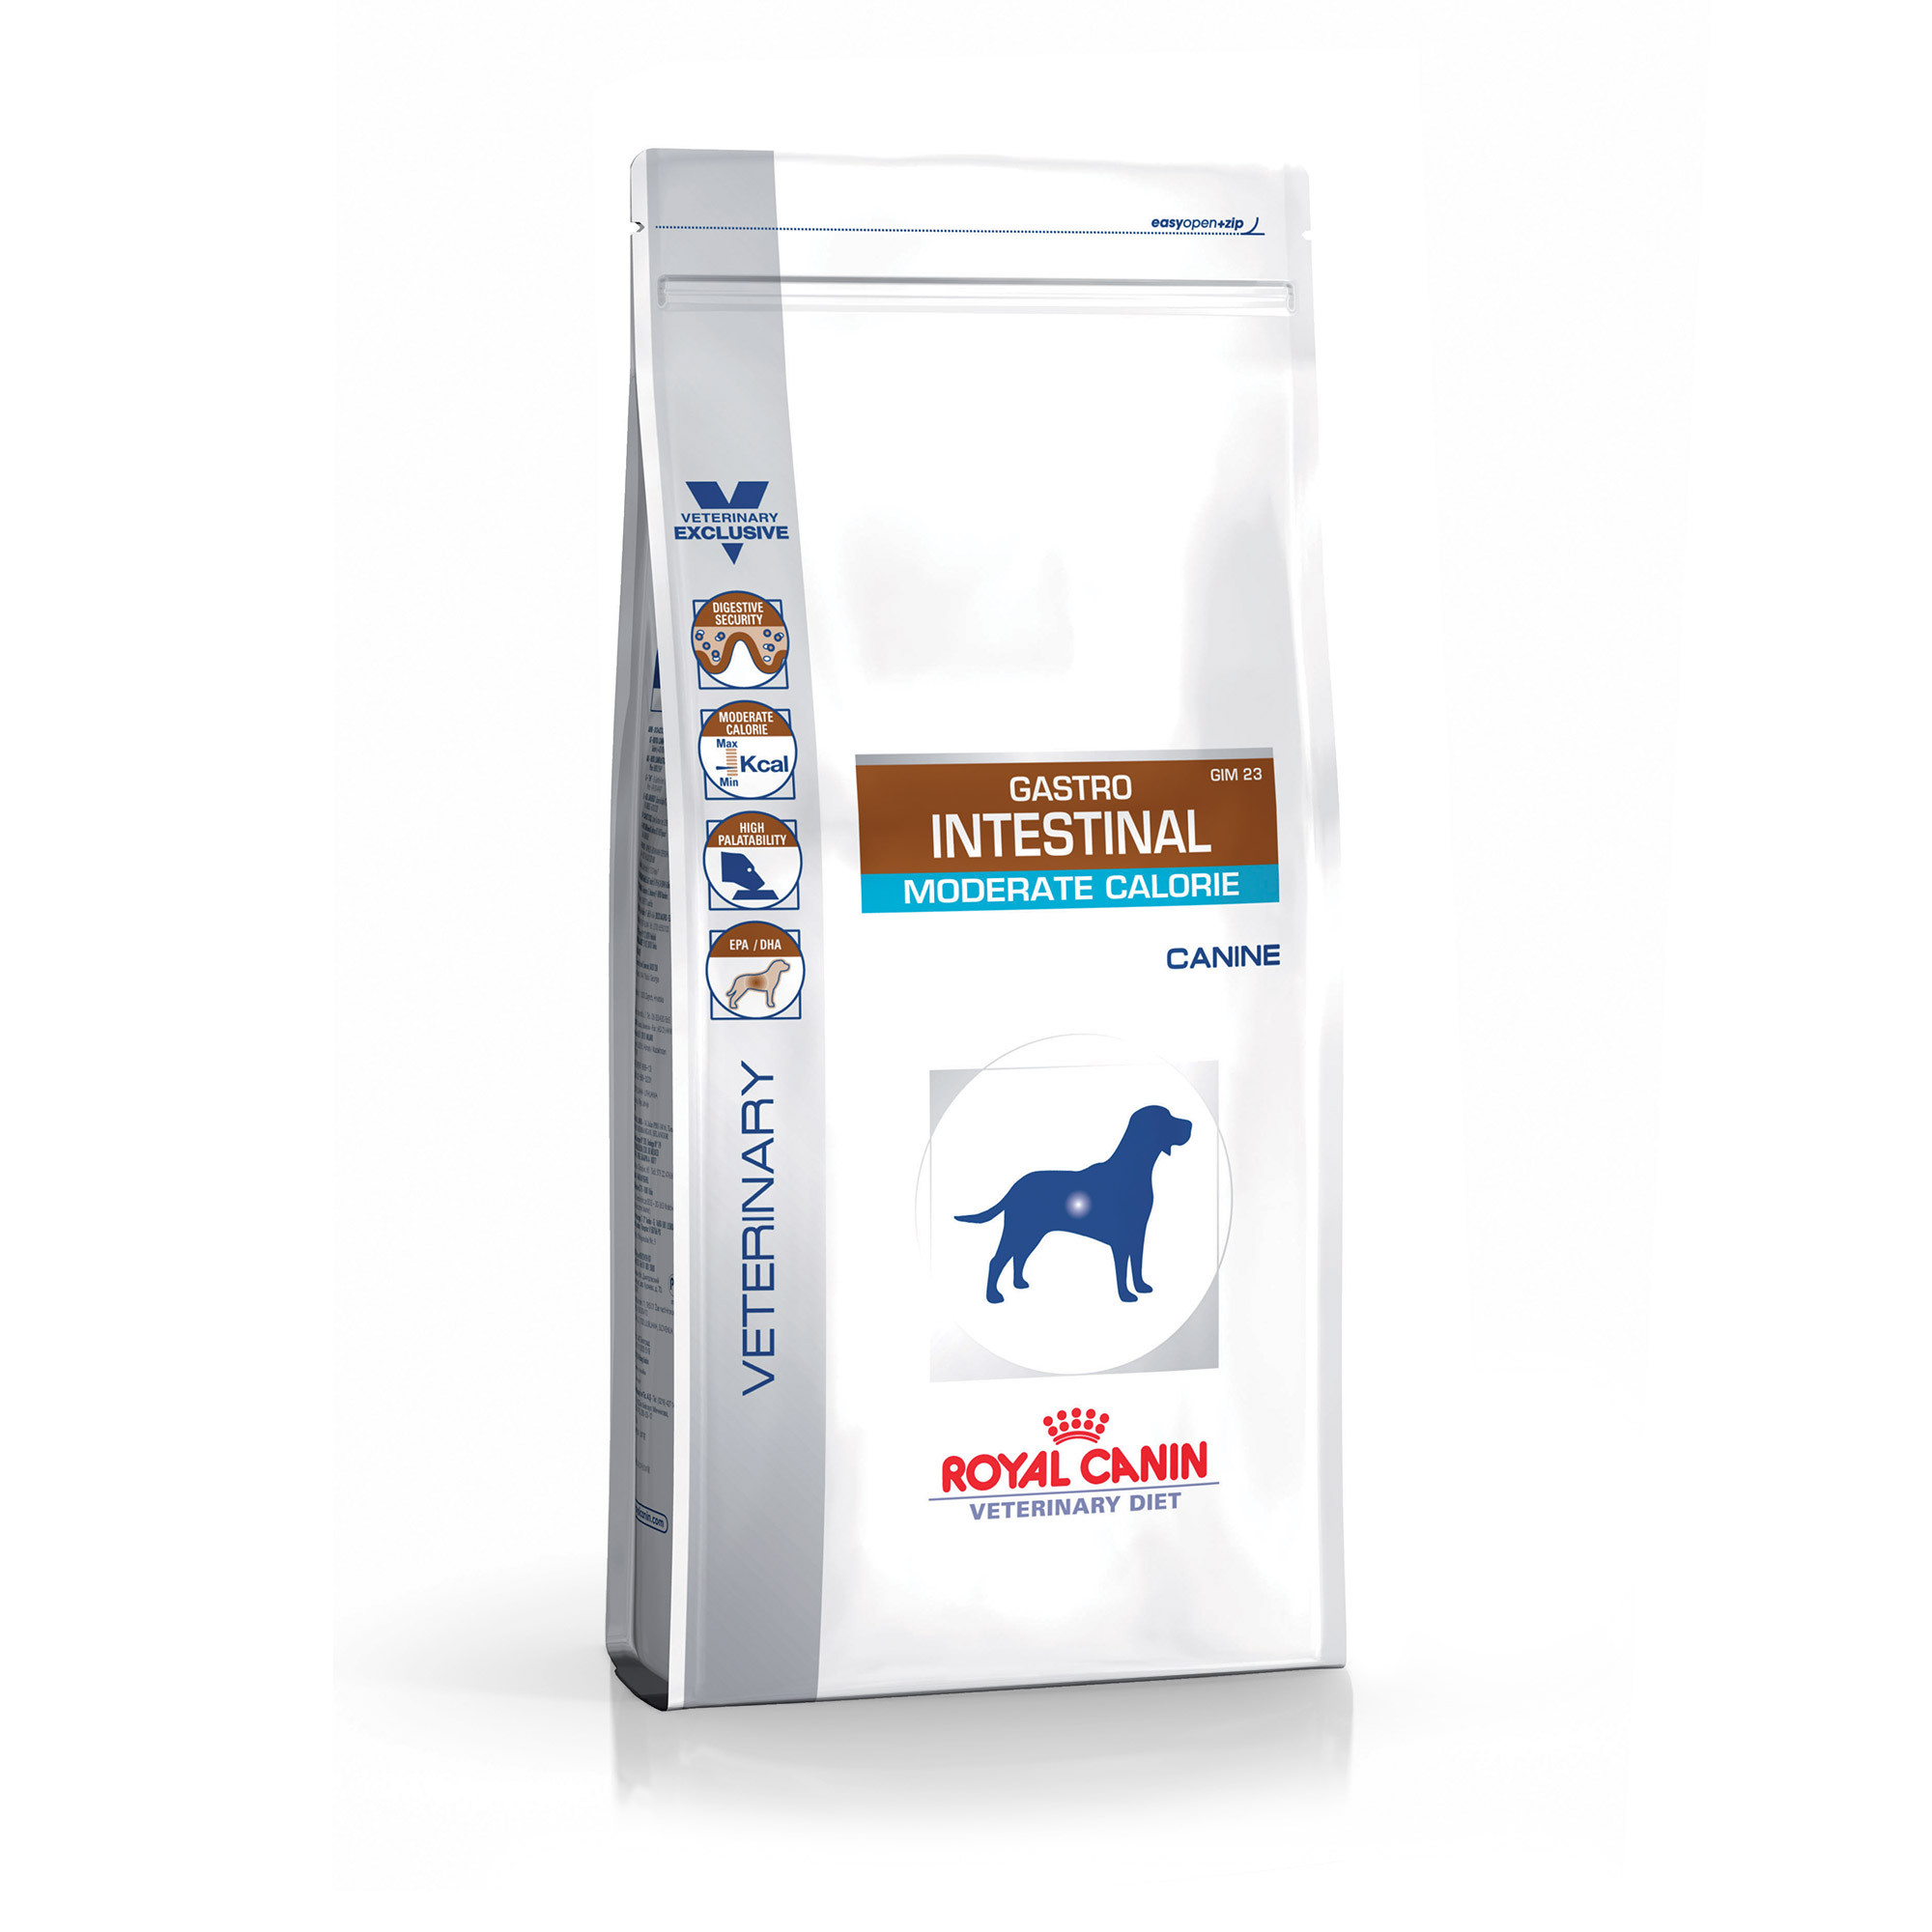 Croquettes Royal Canin Veterinary Diet Gastro Intestinal Moderate Calorie pour chiens